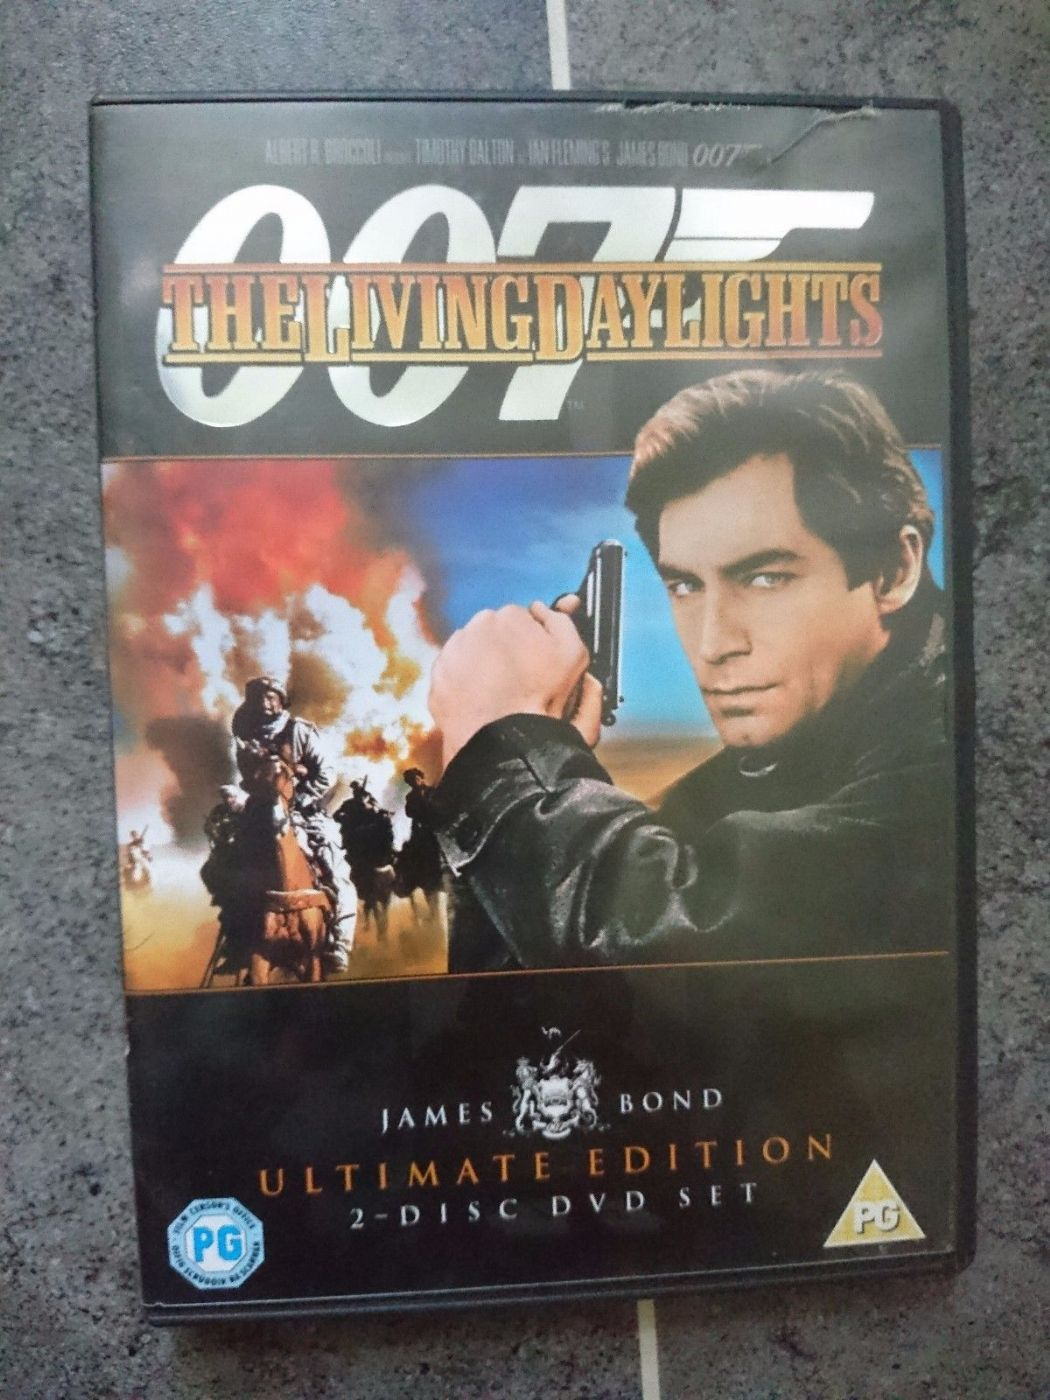 007 James Bond - The Living Daylights (DVD, 2006, 2-Disc Ultimate Edition) USED